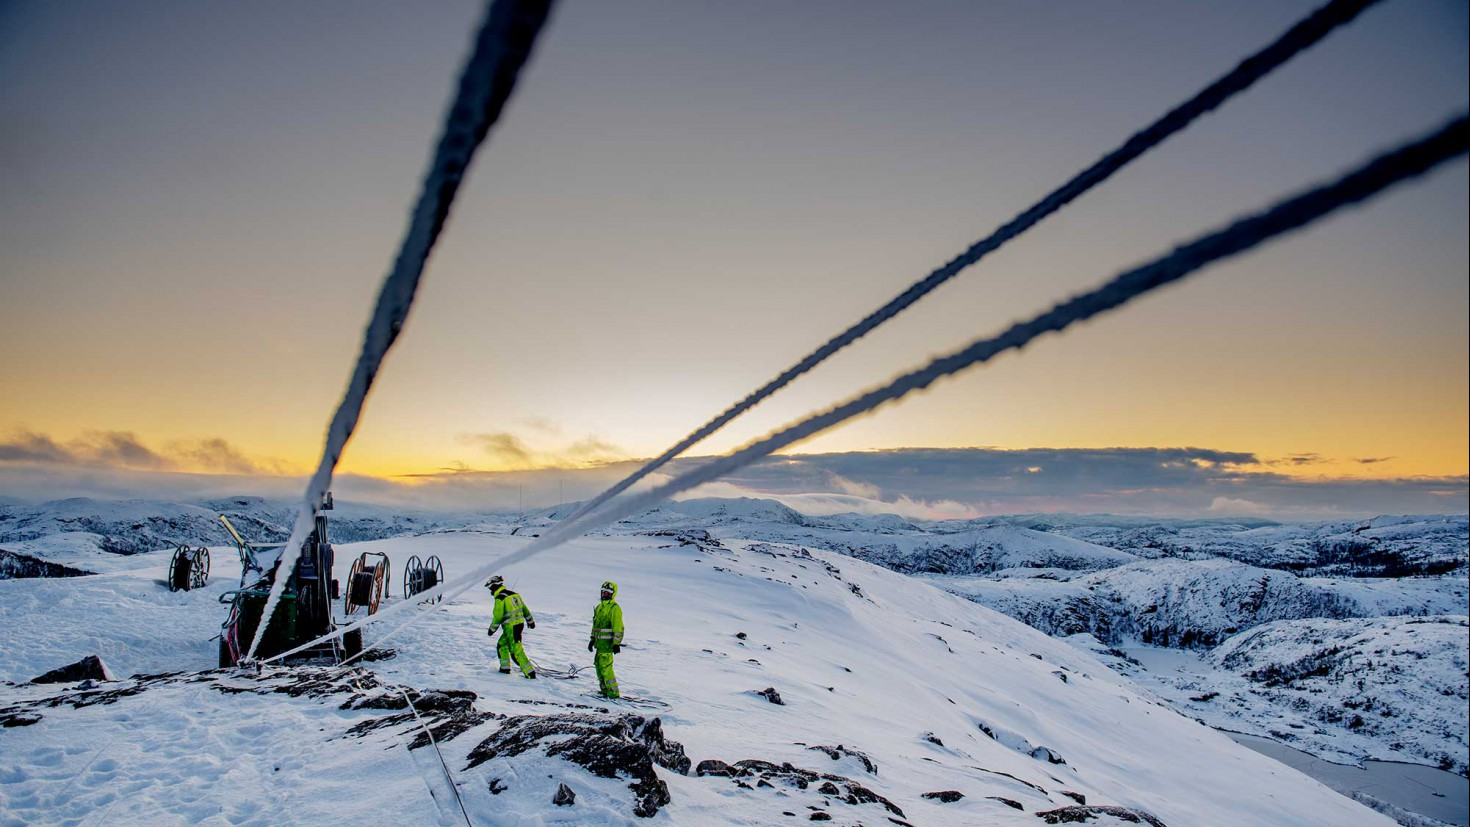 FOSEN VIND company is currently building what will be europe's biggest on-shore wind-power plant, from hitra To ROAN (image) in the fosen district of mid-norway. EFFEcT: 1000 MW in total. CICERO researchers will study the social reception of the project. FOTO: ole martin wold